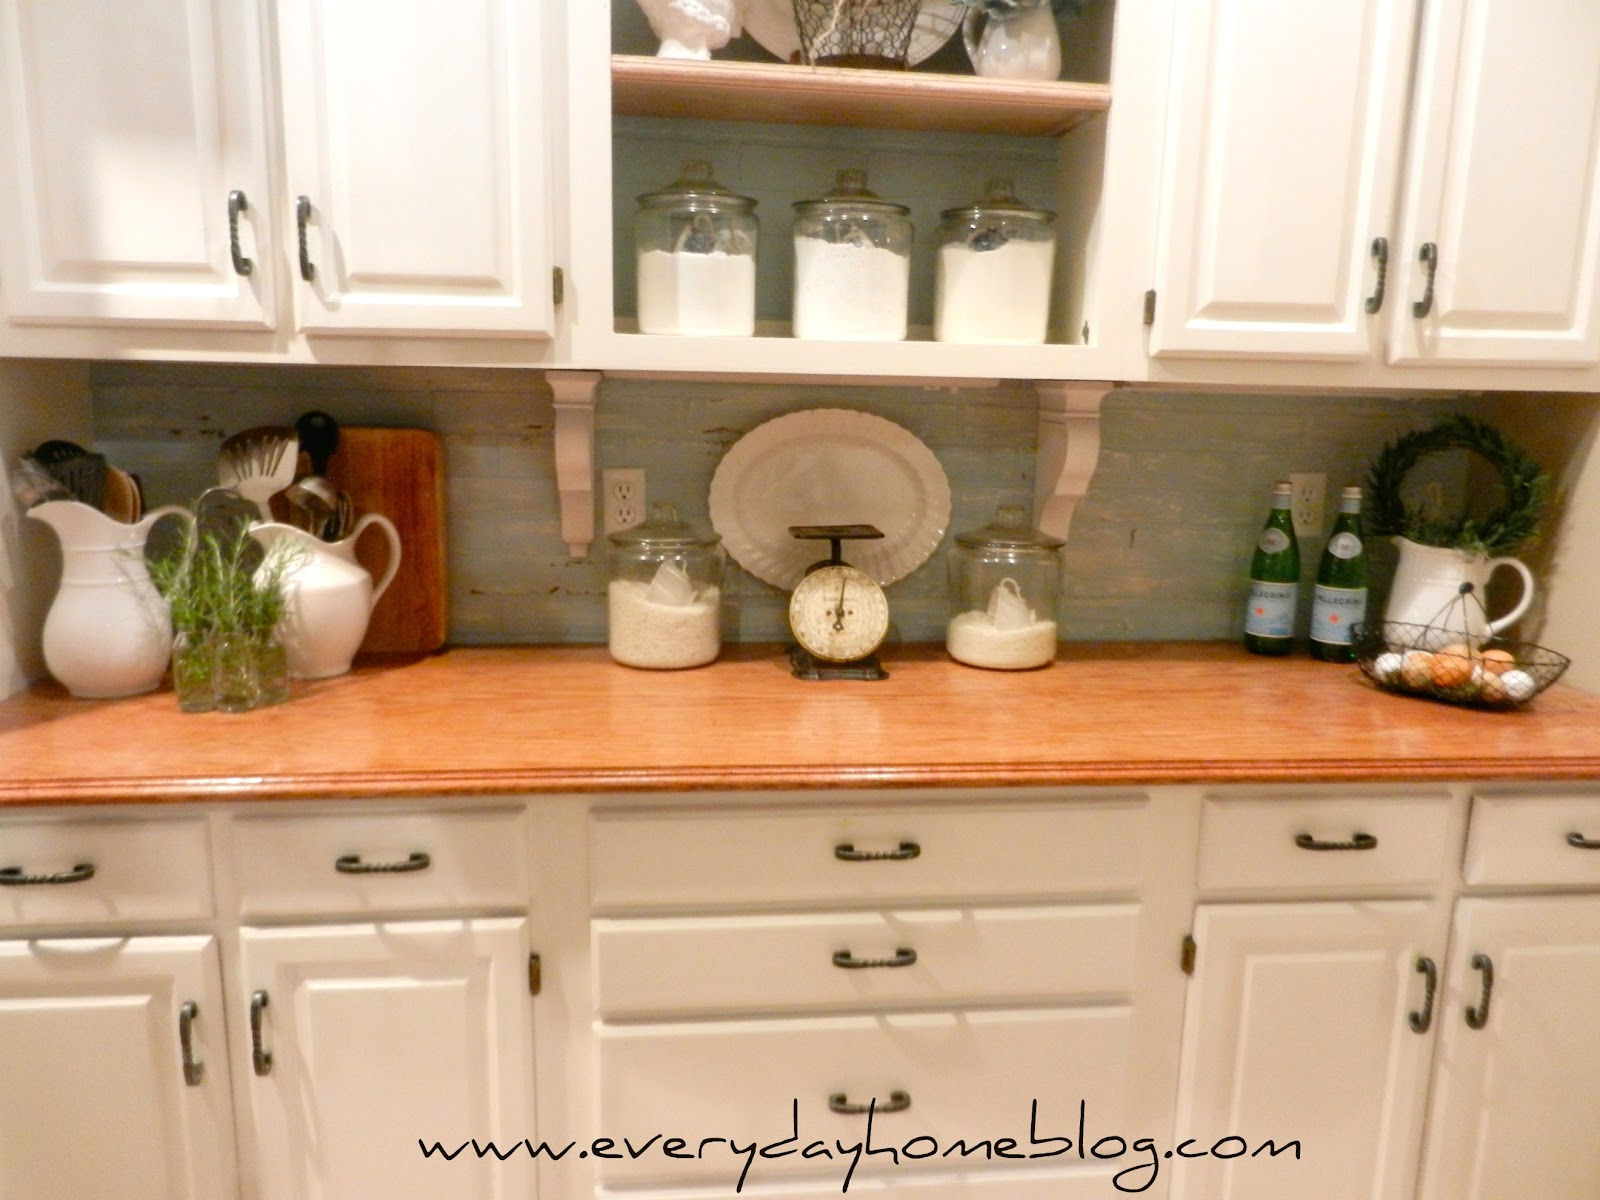 Painting Tiles In The Kitchen Budget Friendly Painted Brick Backsplash At The Everyday Home